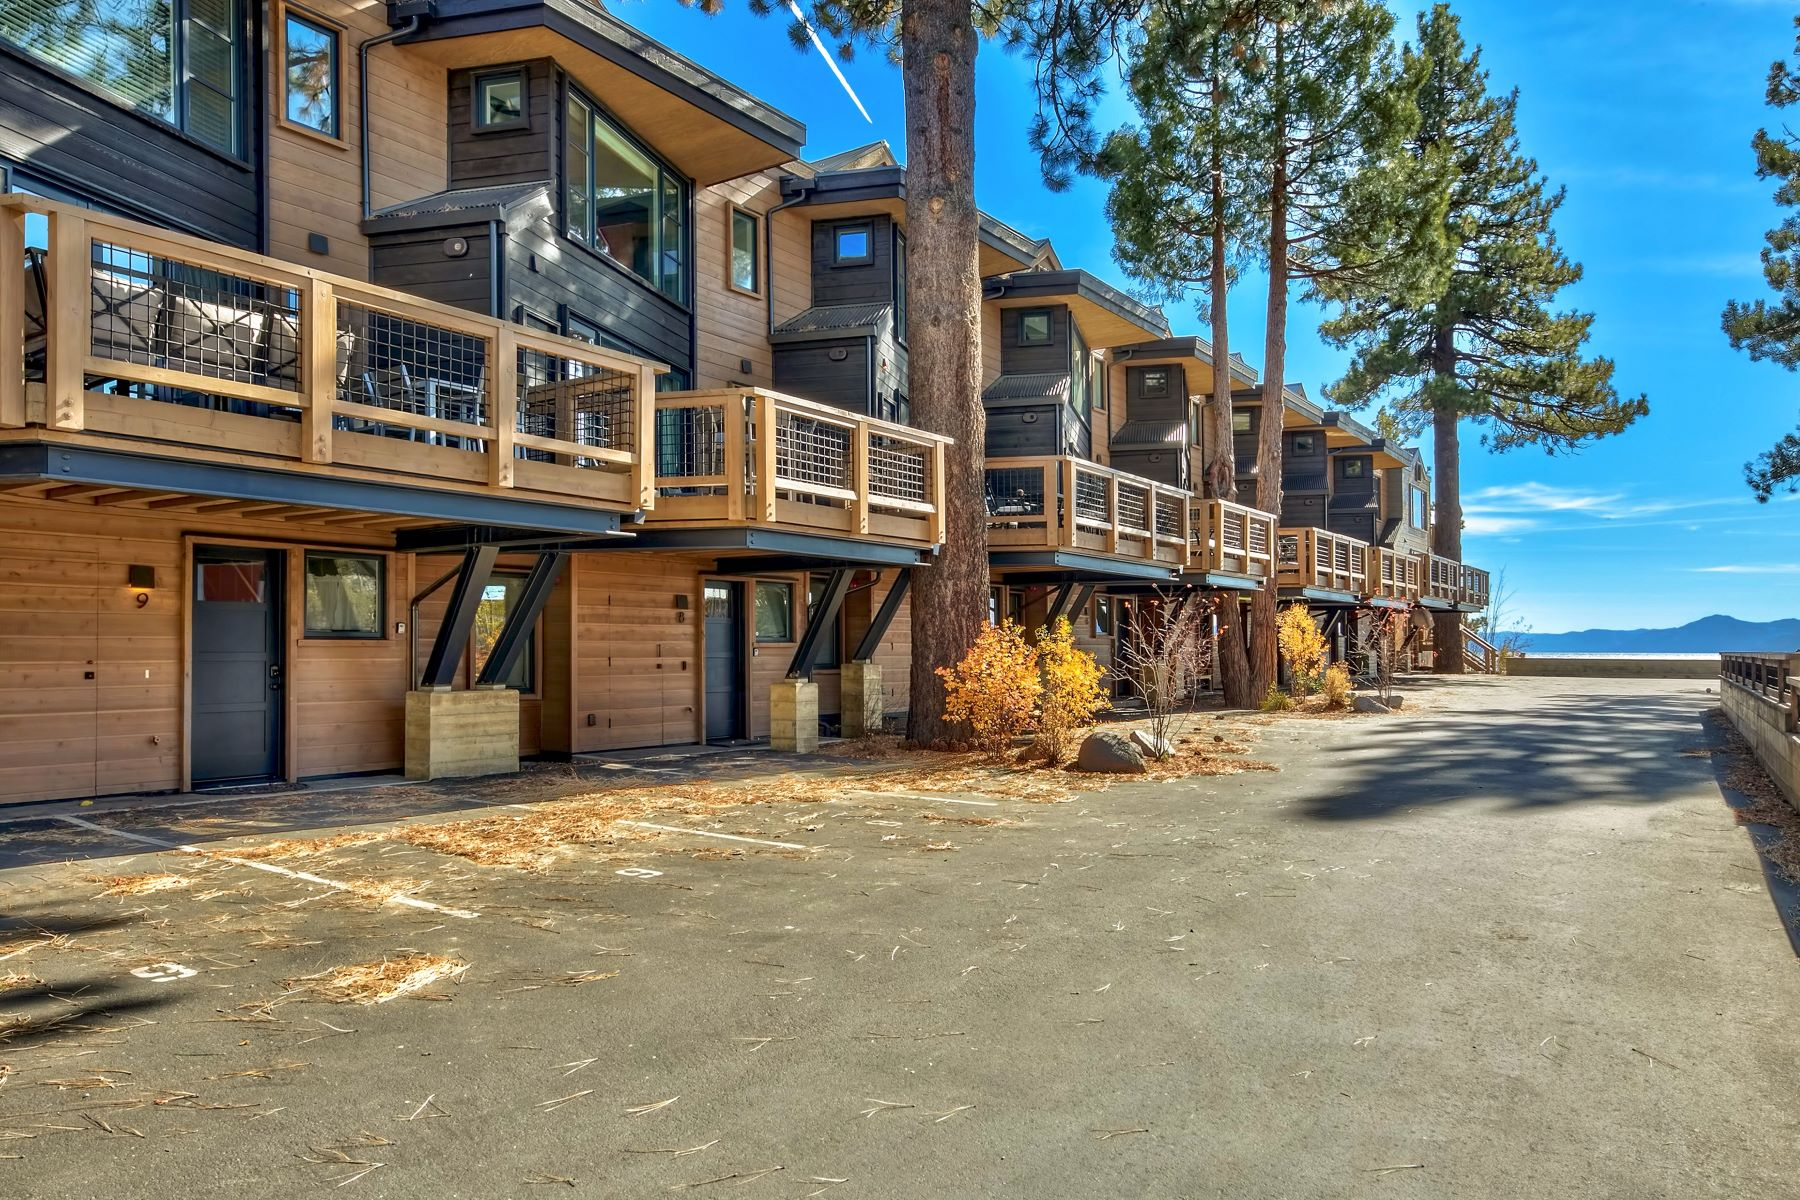 Single Family Homes for Active at 8308 N Lake Blvd, Unit 9, Kings Beach CA 96143 8308 North Lake Blvd. #9 Kings Beach, California 96143 United States